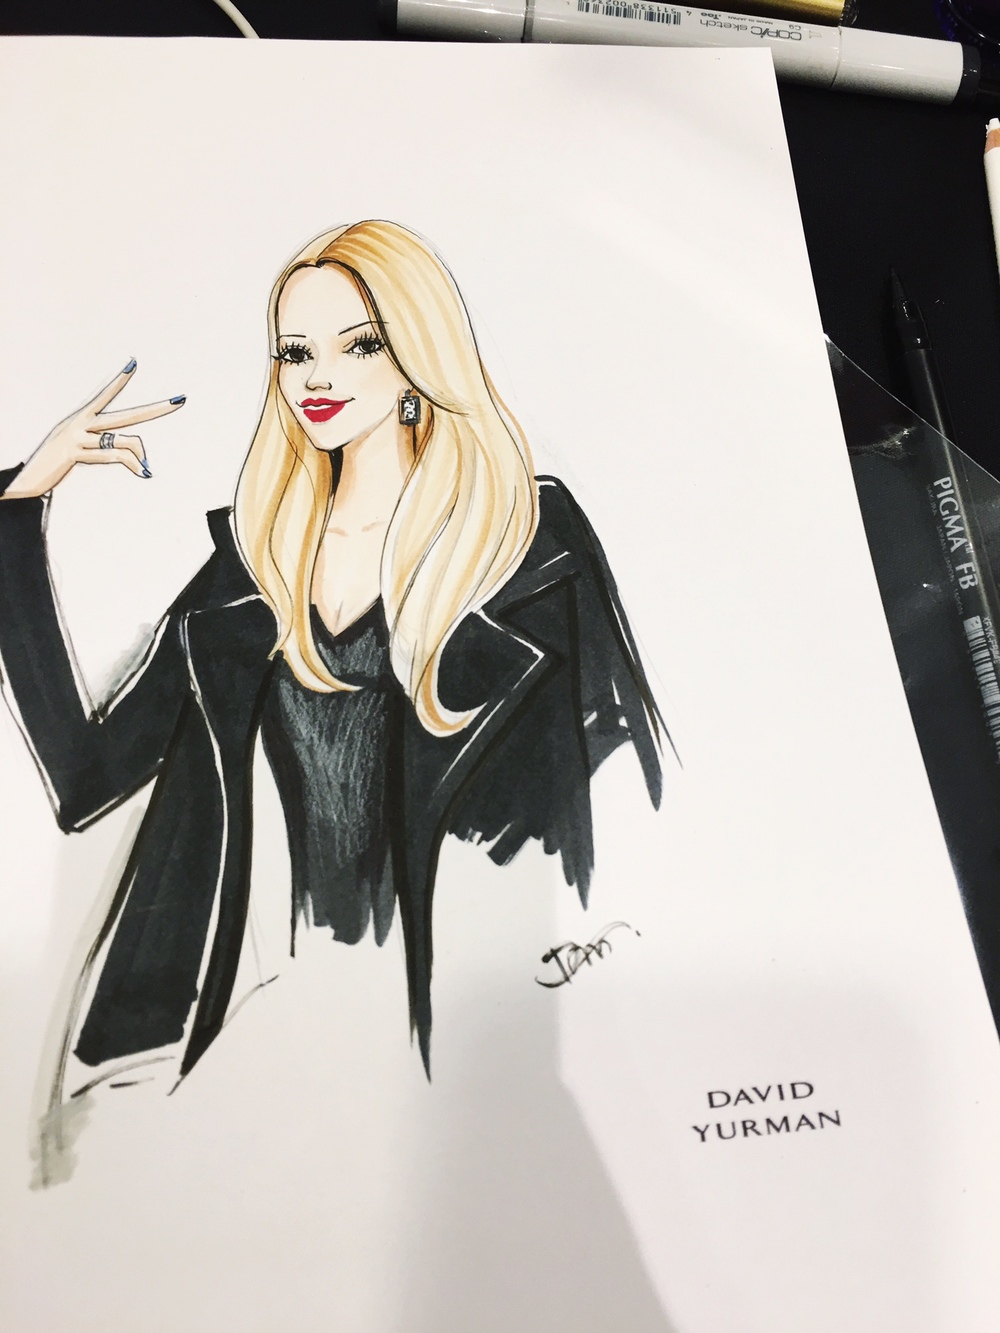 Saks fifth avenue Live-sketch event for David Yurman by Fashion illustrator Rongrong DeVoe